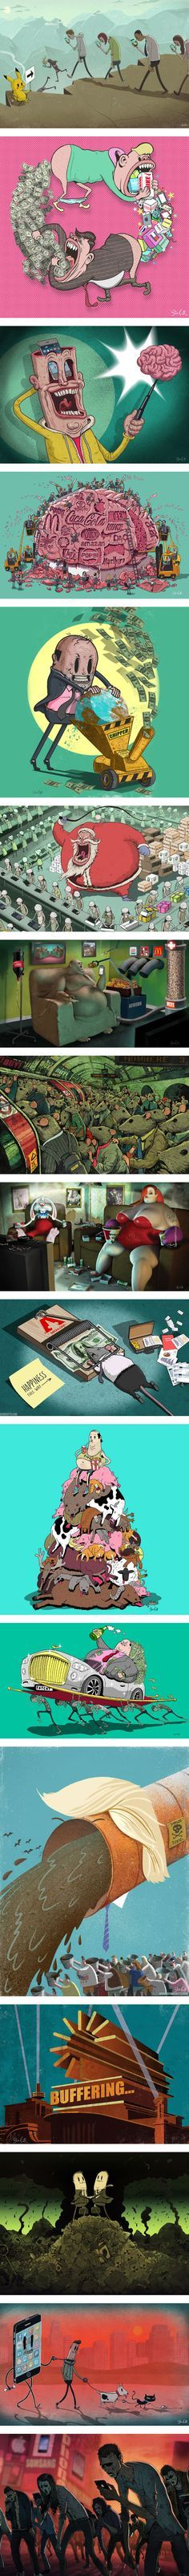 These 17 satirical images illustrate the pitfalls of pop consumer culture…